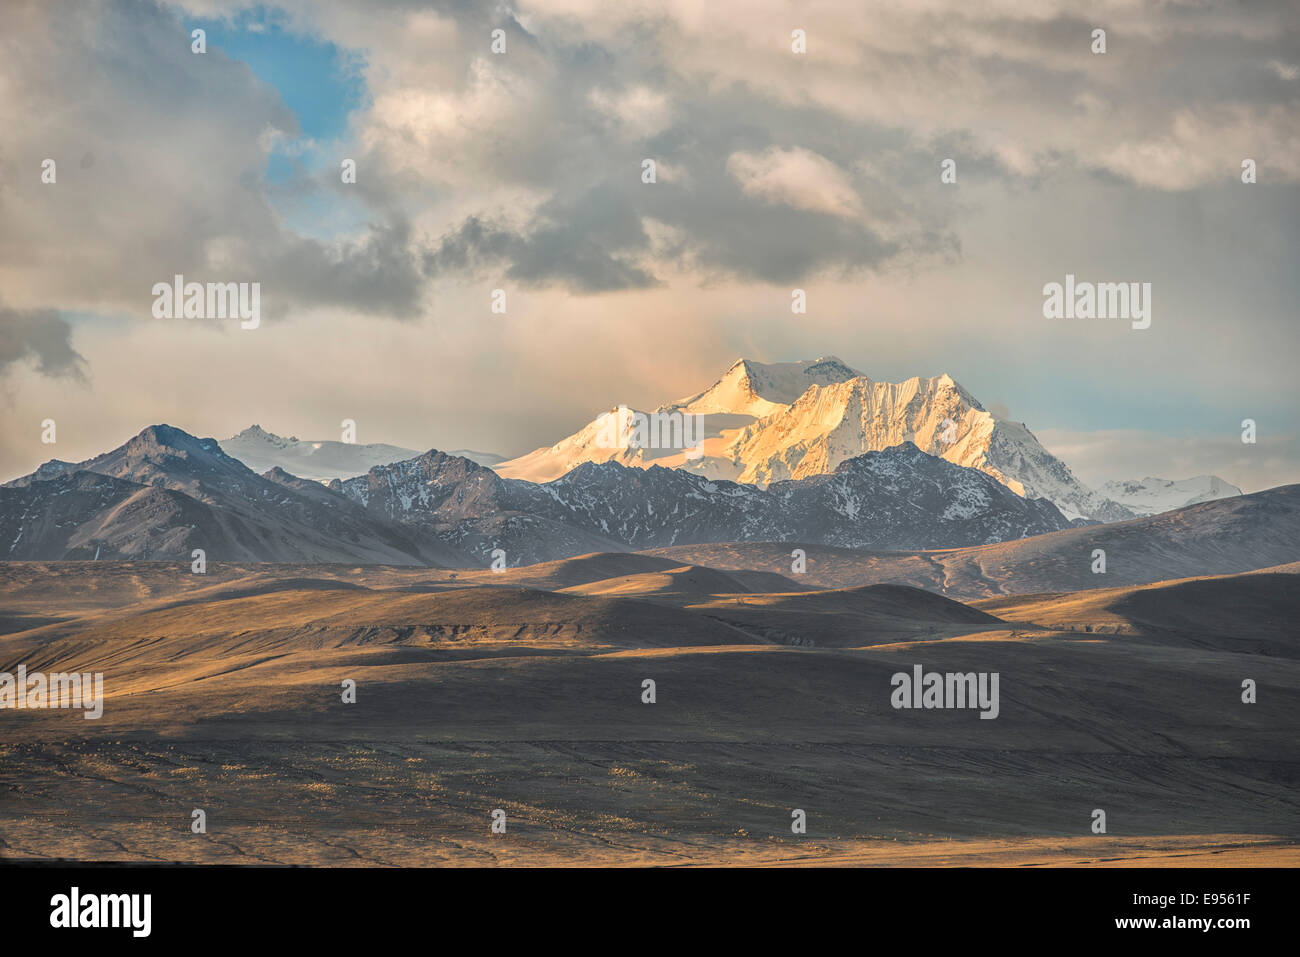 Cordillera Real at sunset, Bolivian plateau Altiplano, La Paz, Bolivia - Stock Image